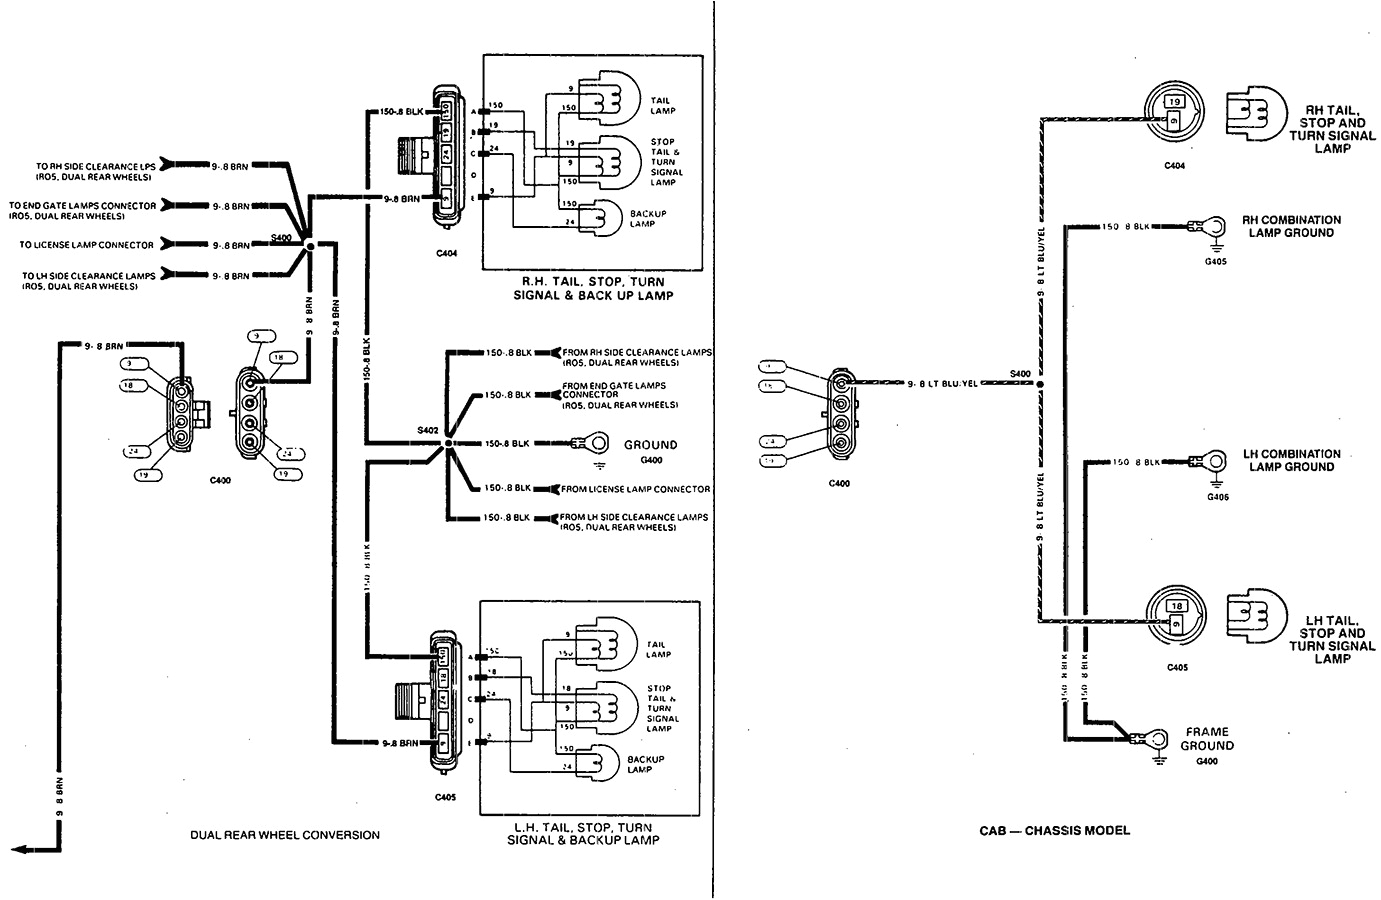 1978 chevy truck tail light wiring harness diagram wiring diagrams 1978 chevy truck tail light wiring harness diagram